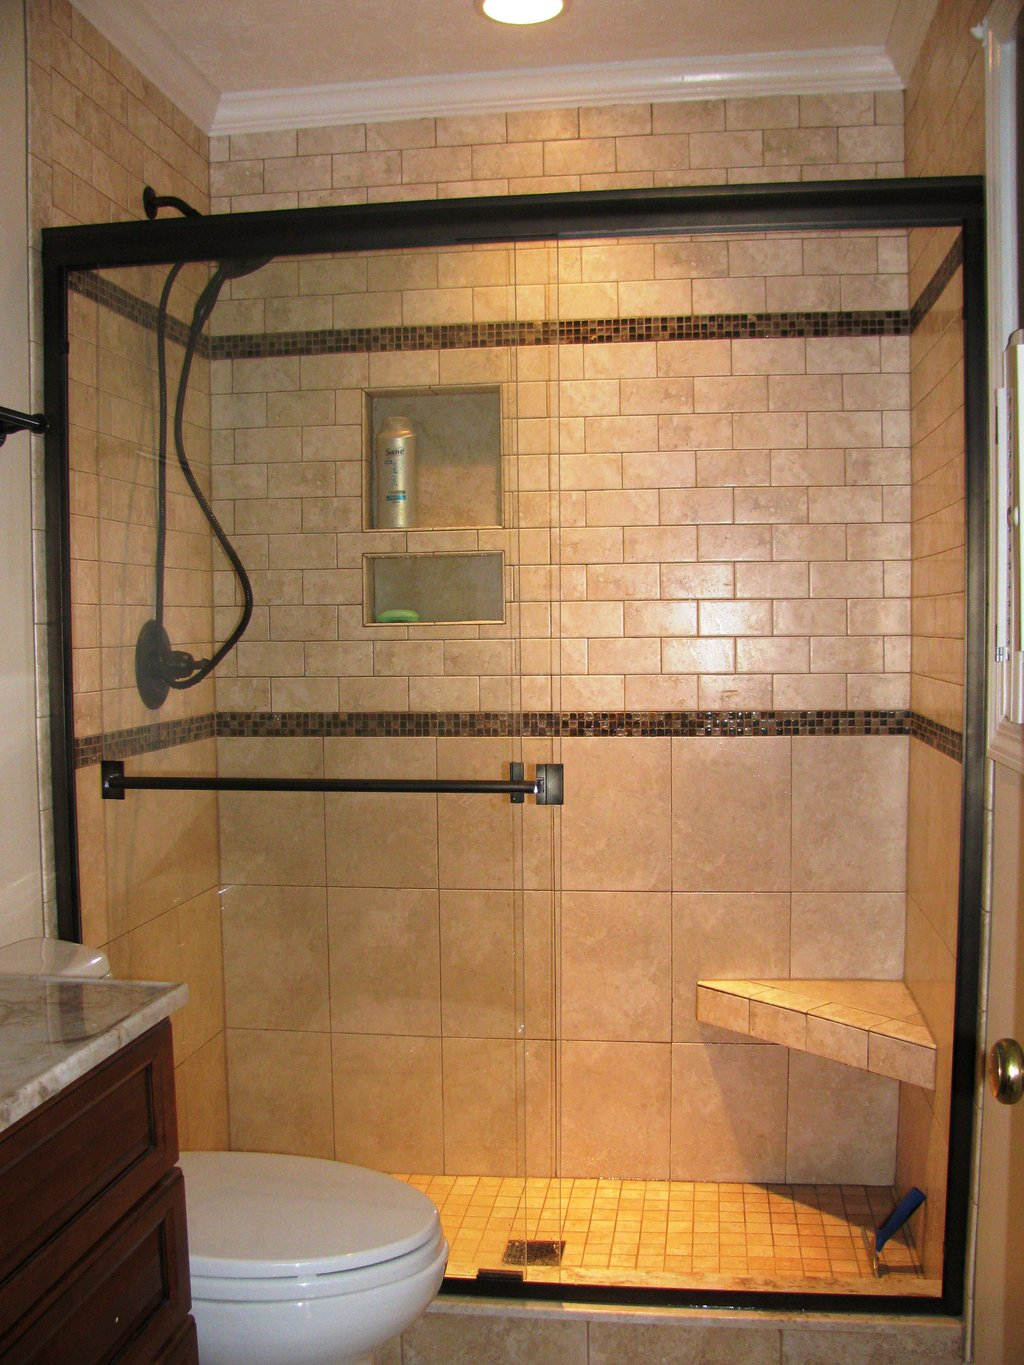 Bathroom Tiled Shower Idea Install Mild Soap For Slate Tile Flooring